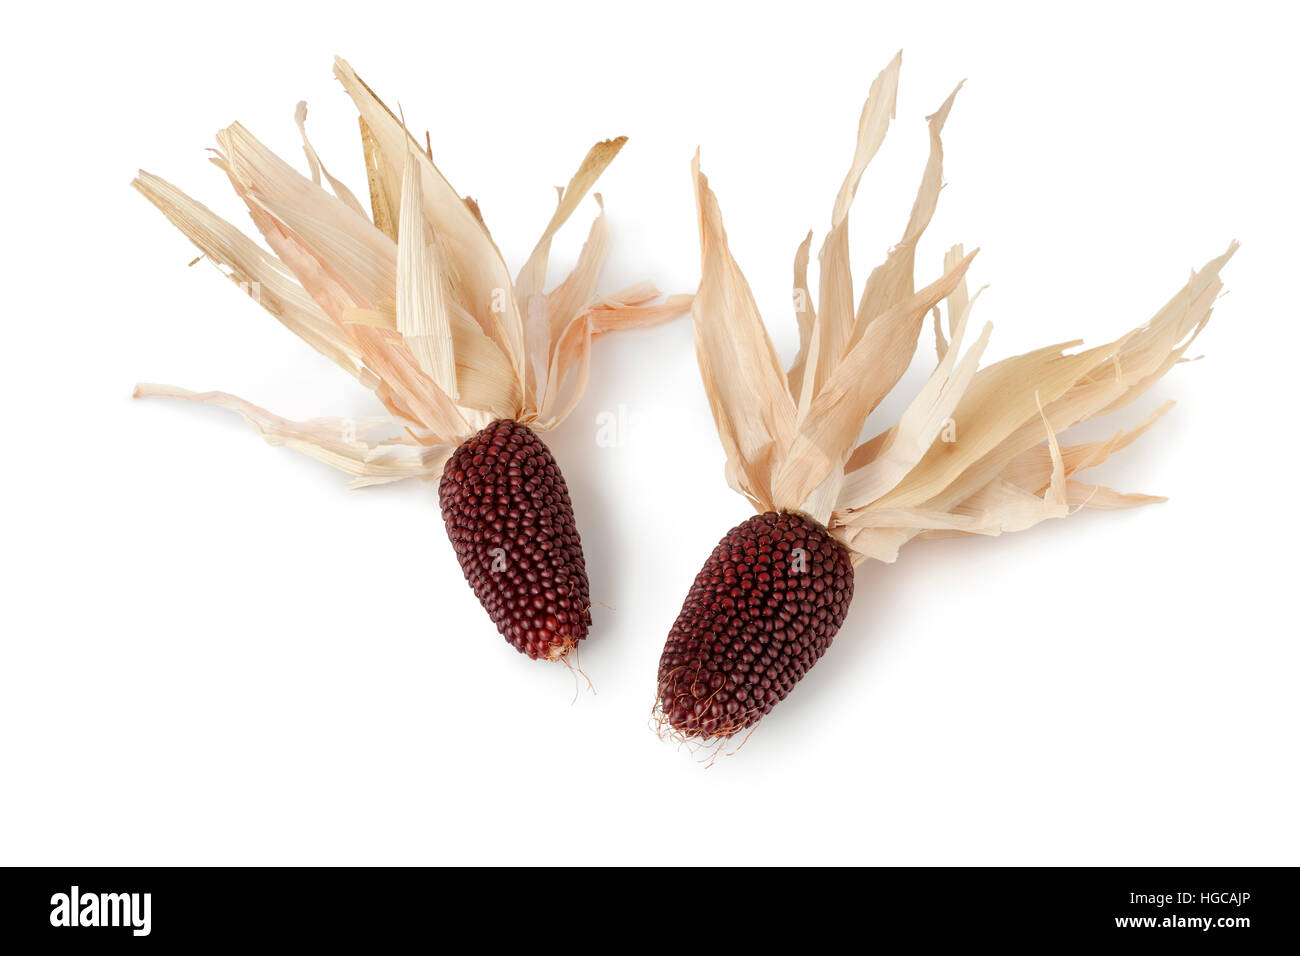 Strawberry Corn ears on white background - Stock Image